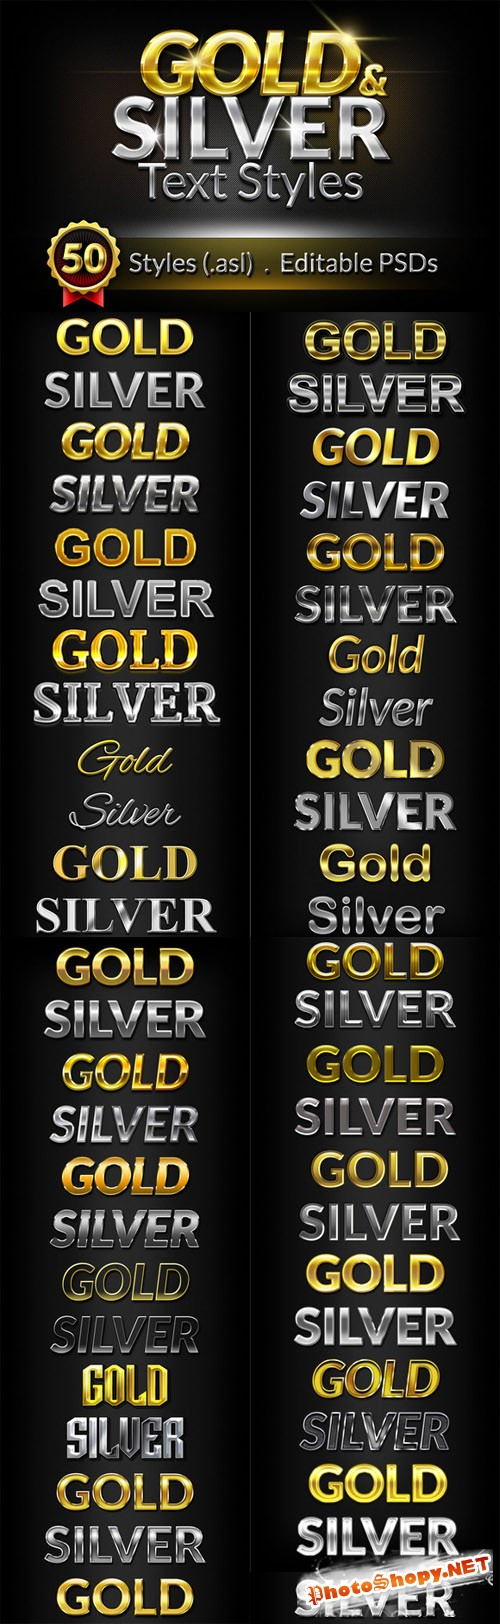 50 Gold & Silver Text Styles - CM 46314